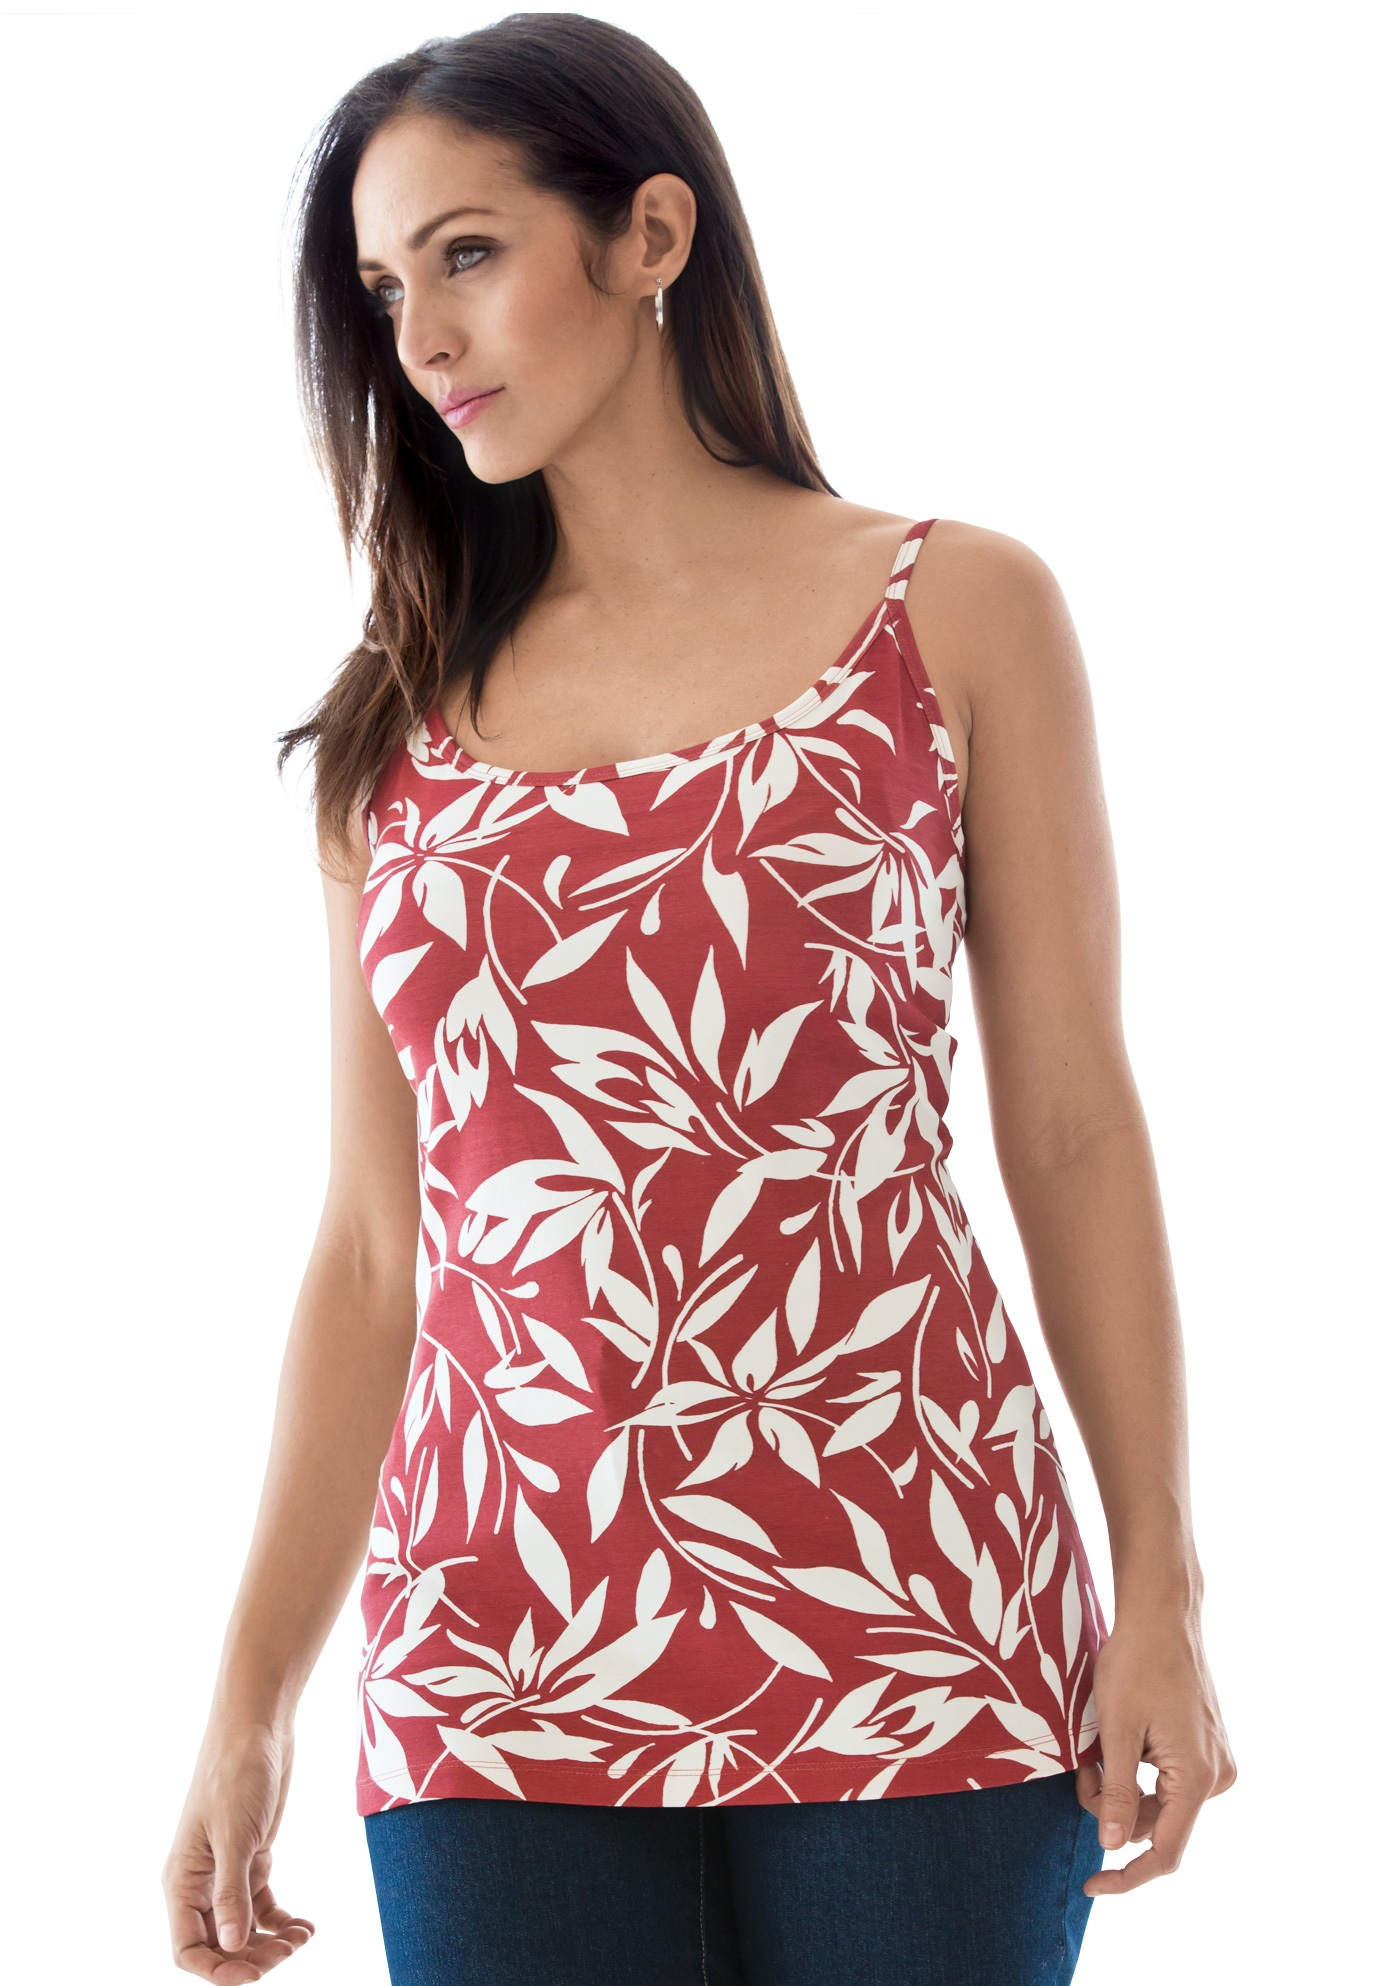 Cami Top with Adjustable Straps, ABSTRACT FLORAL, hi-res